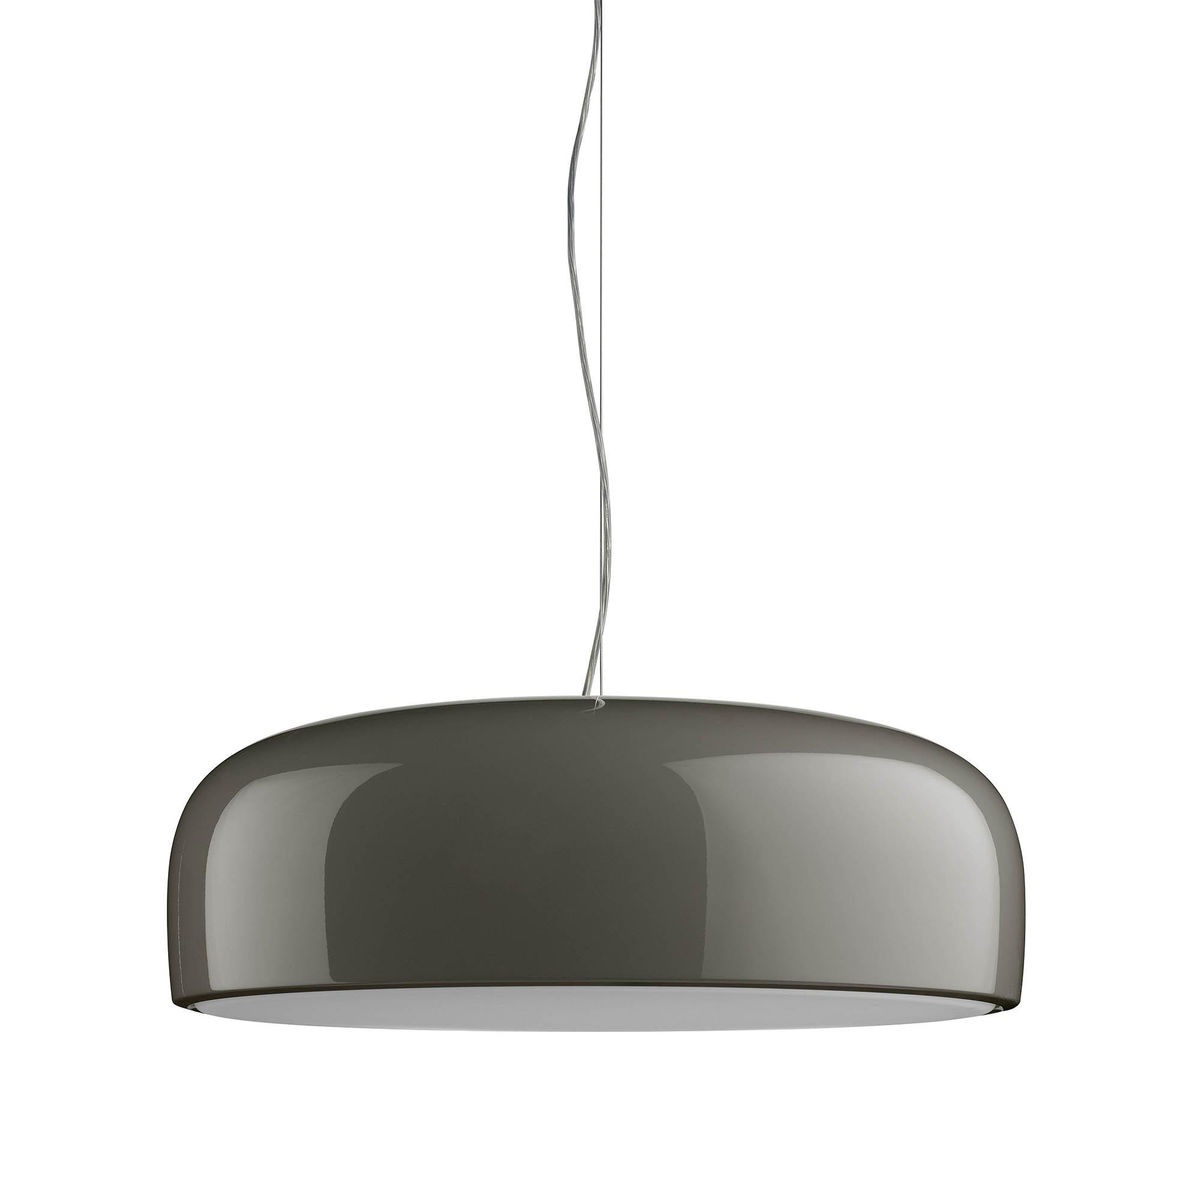 Smithfield S Eco Pendant Lamp dimmable ø60cm 2G11 2x36w Grey Mud